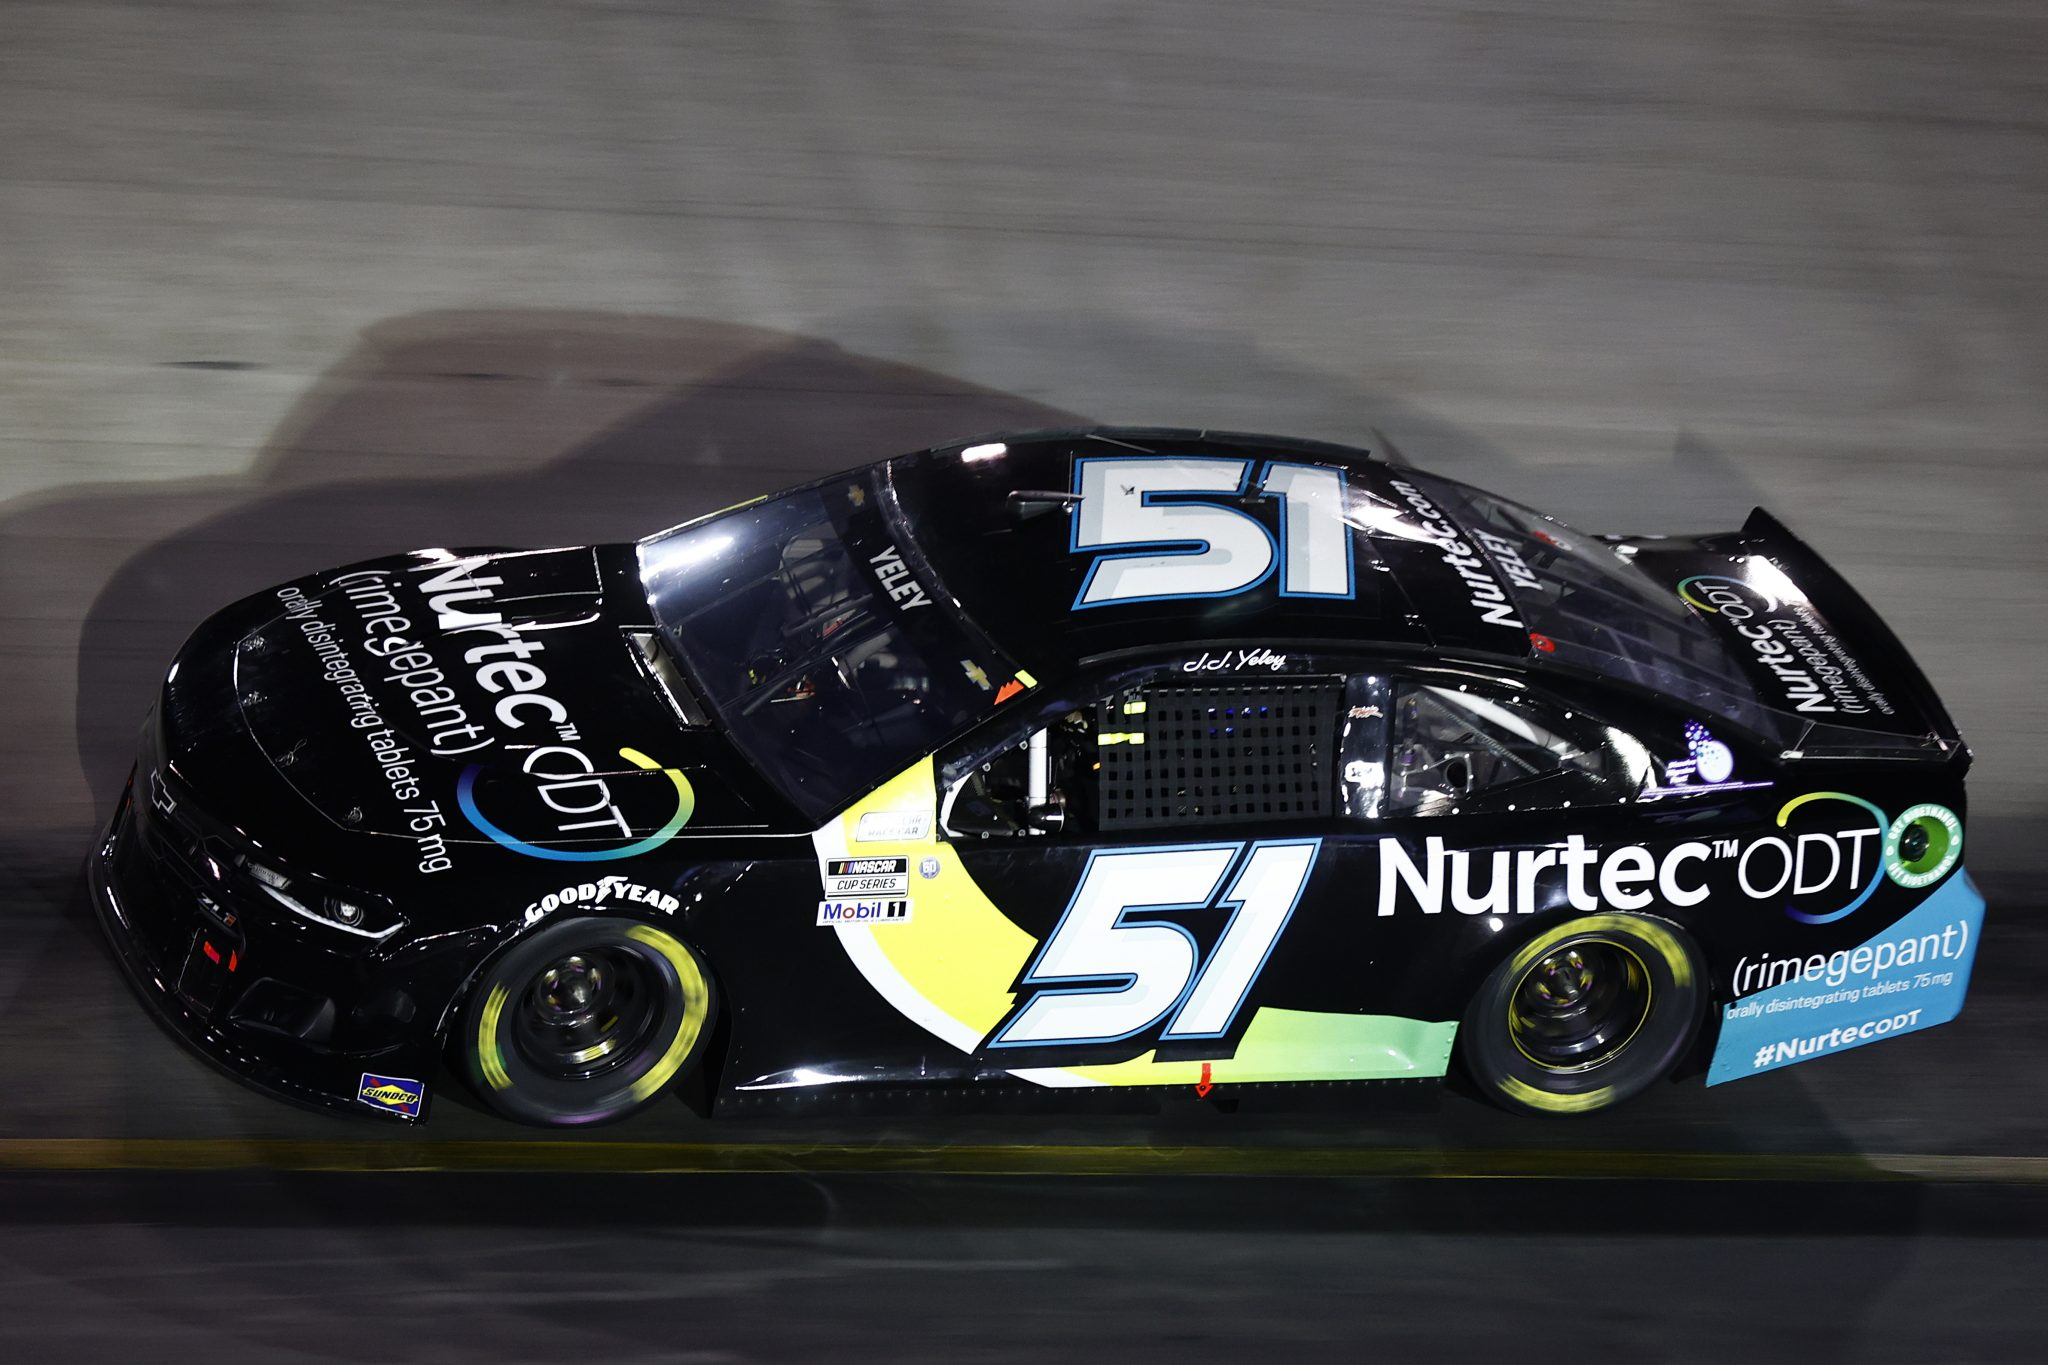 BRISTOL, TENNESSEE - SEPTEMBER 18: JJ Yeley, driver of the #51 Nurtec ODT Chevrolet, drives during the NASCAR Cup Series Bass Pro Shops Night Race at Bristol Motor Speedway on September 18, 2021 in Bristol, Tennessee. (Photo by Jared C. Tilton/Getty Images) | Getty Images